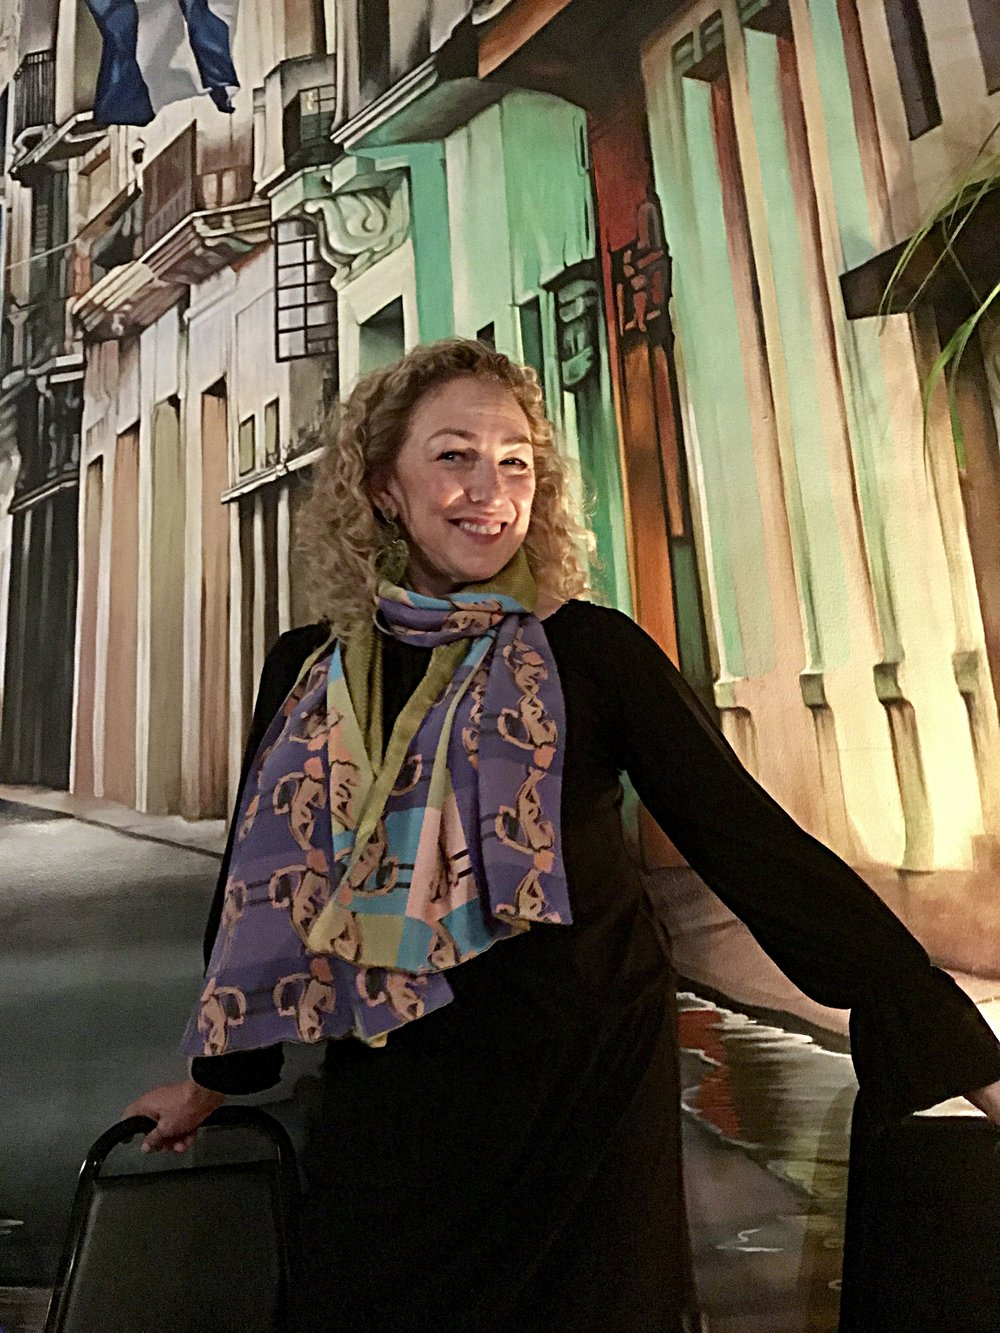 First night in NYC at a Cuban restaurant in East Harlem. The mural behind me looks like a stage set or I'm actually IN Cuba. Yes, that's my microbatch textile scarf I'm wearing.